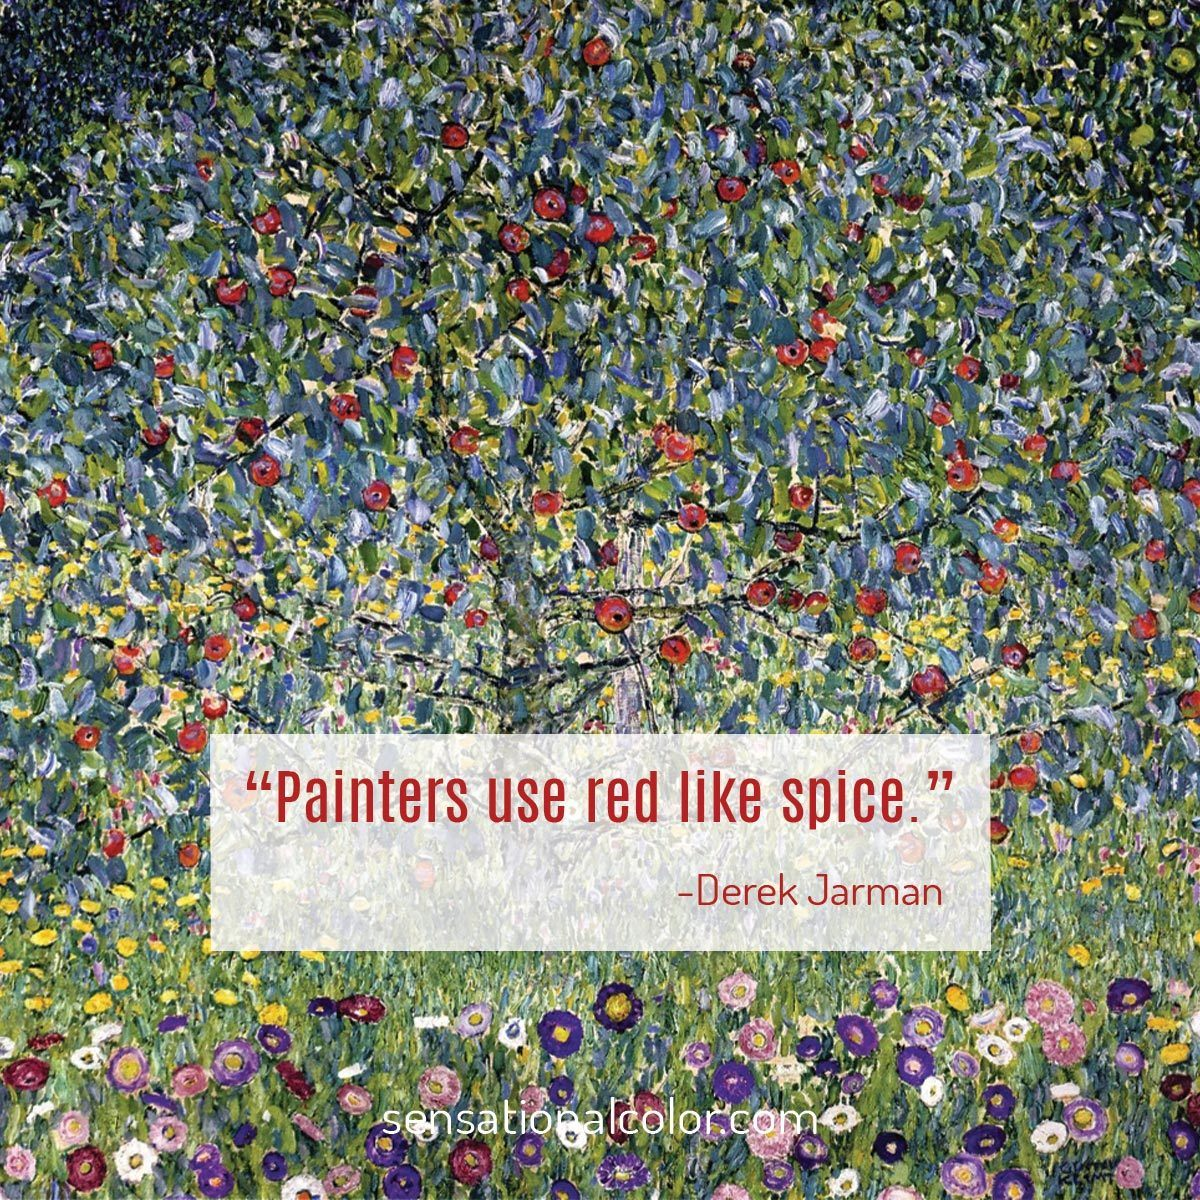 """Painters use red like spice."" - Michael Derek Elworthy"